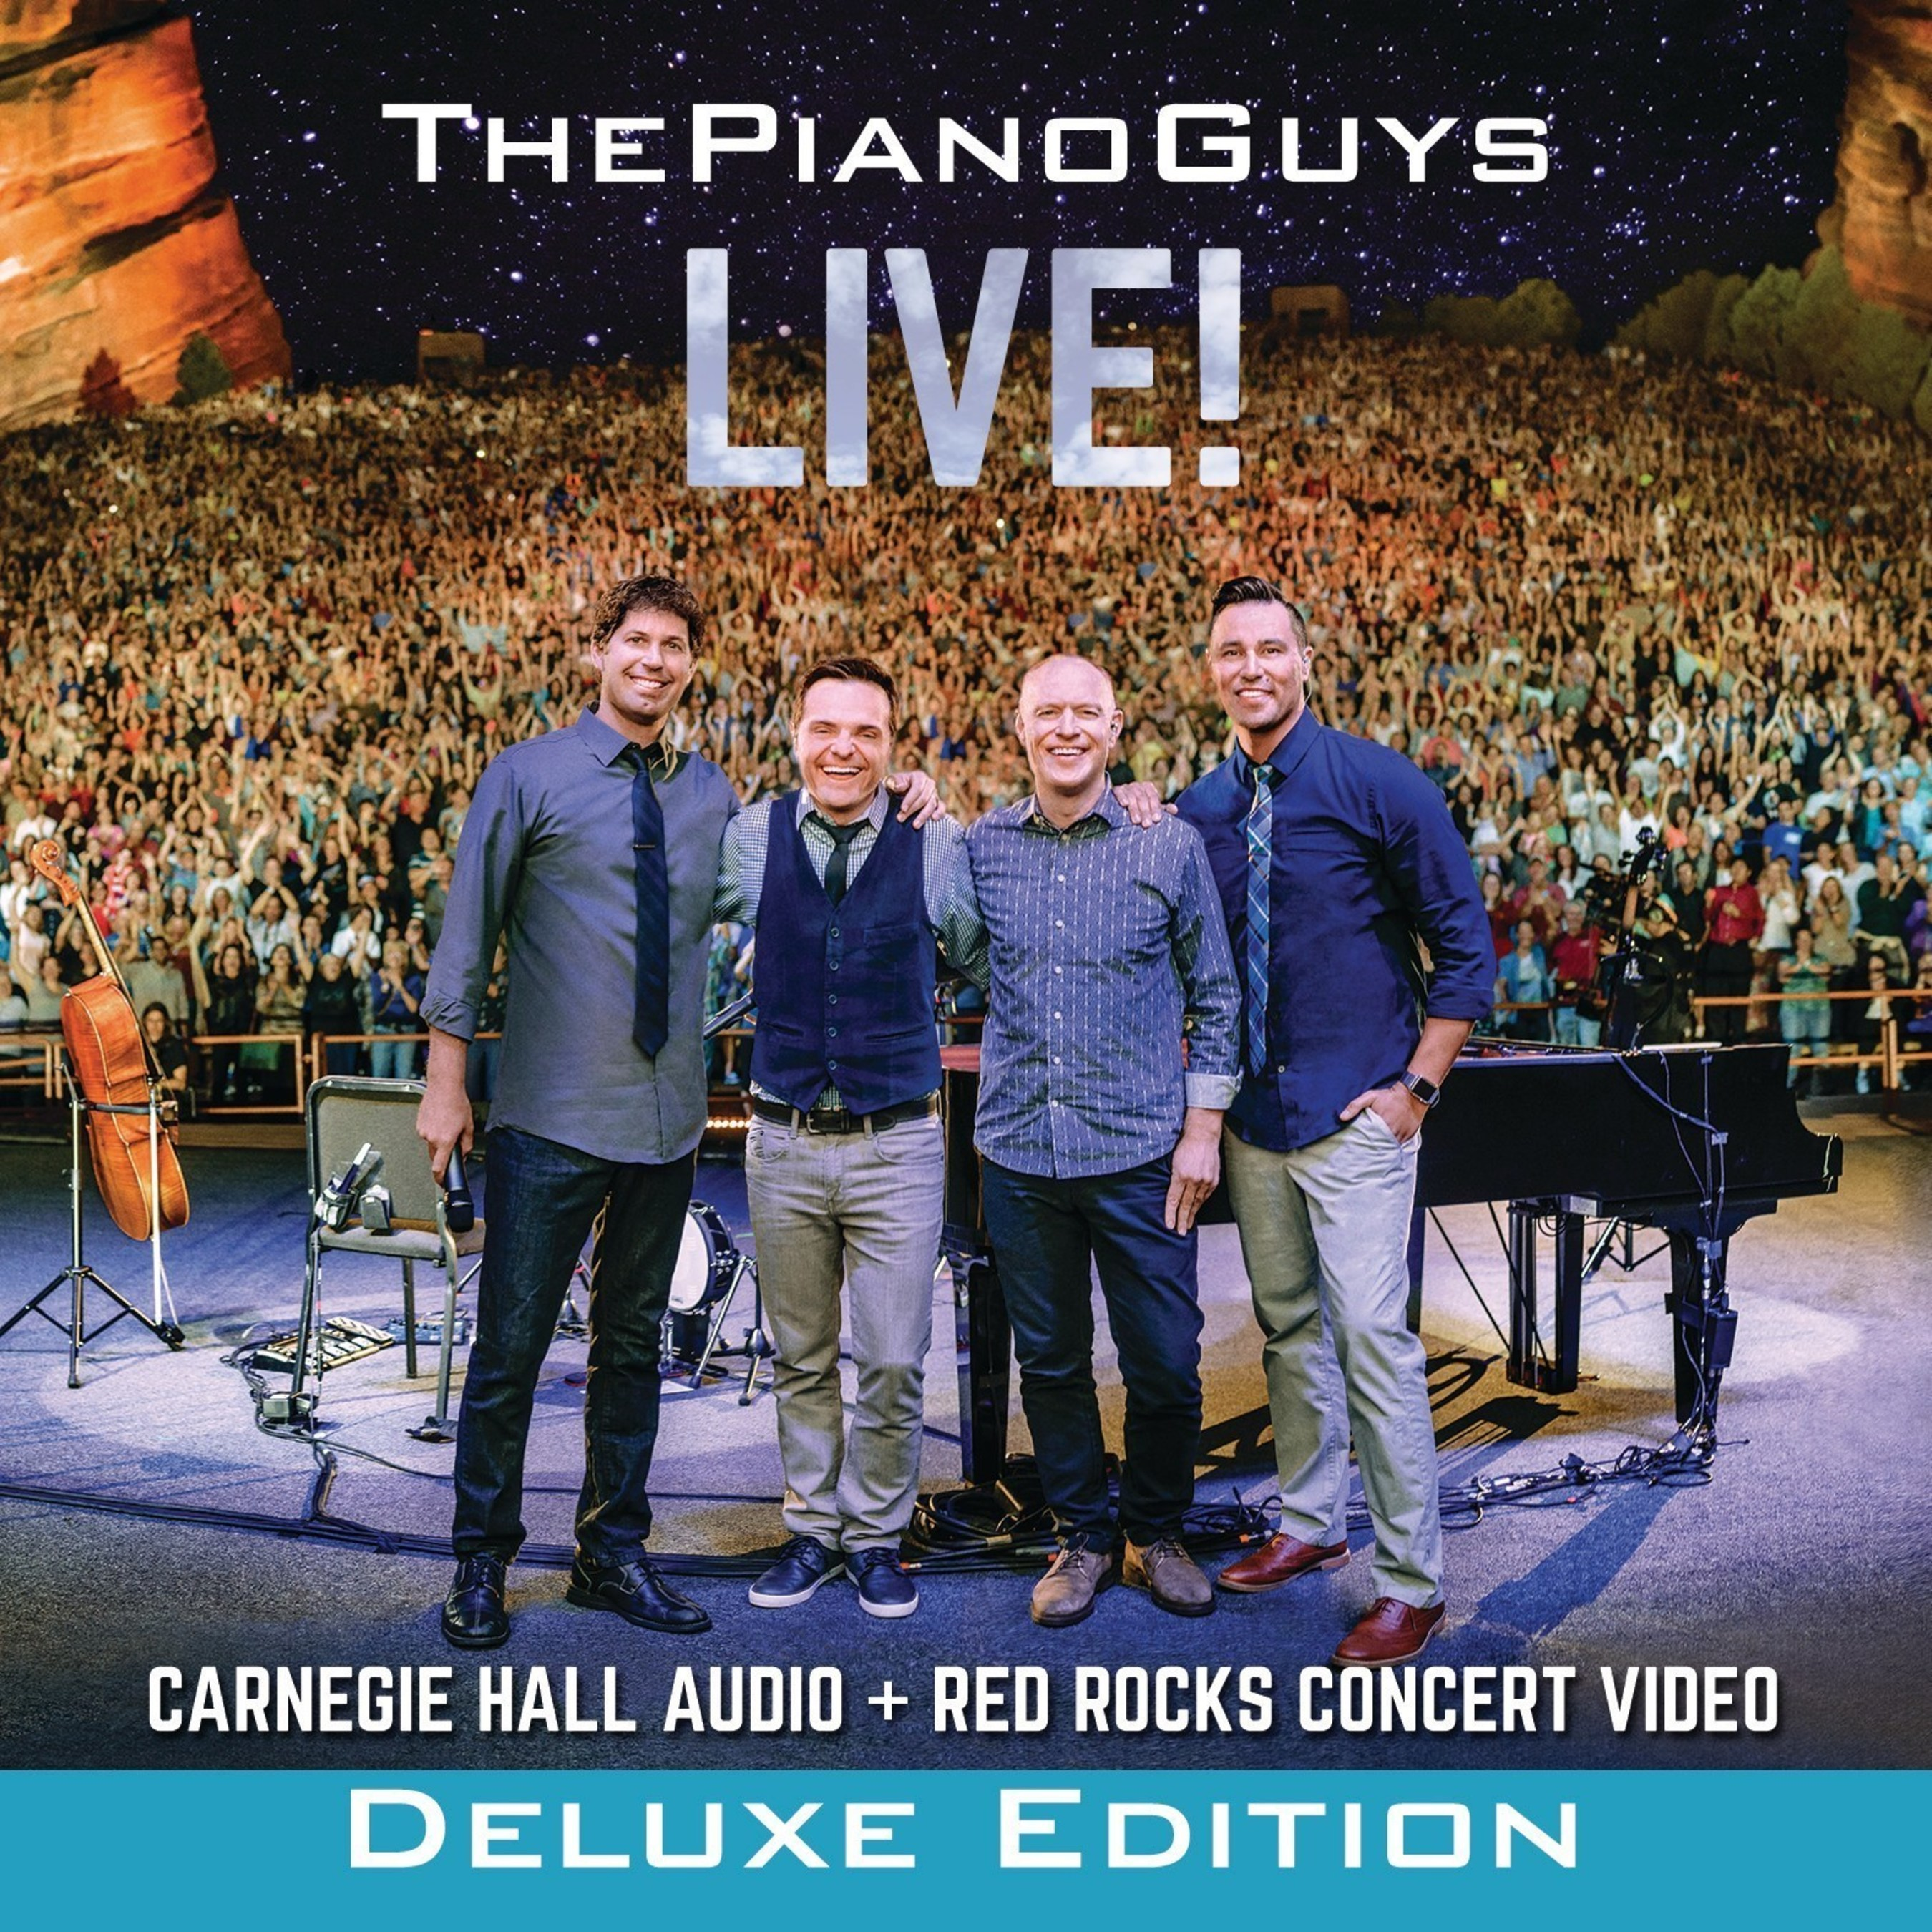 THE PIANO GUYS RELEASE THEIR FIRST LIVE ALBUM Available November 13, 2015